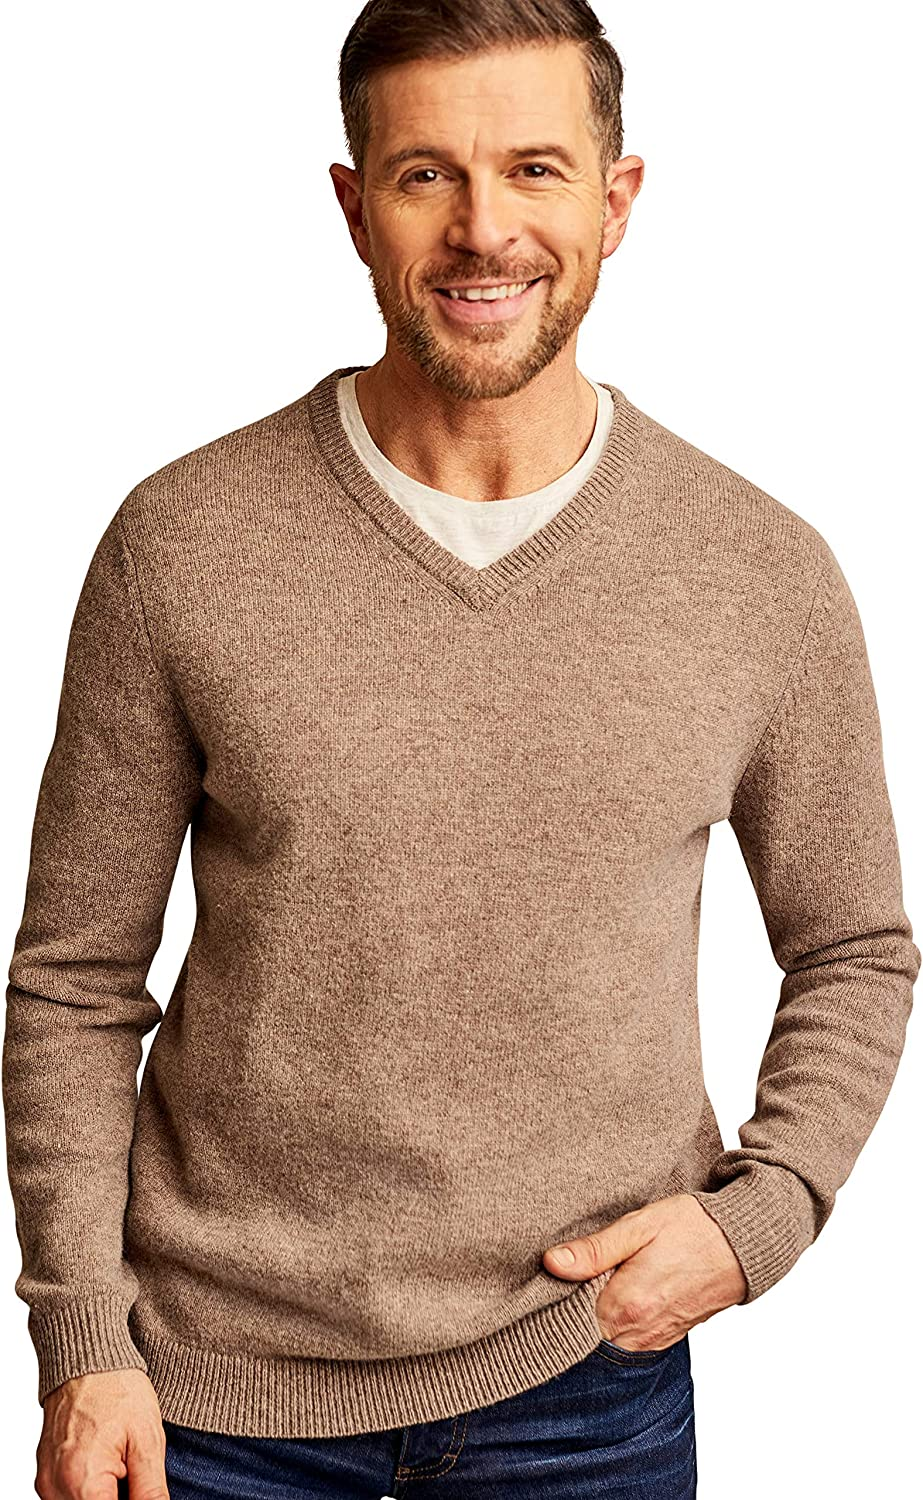 Woolovers Mens Lambswool V Neck Knitted Sweater Cozy Comfort M Dark Pepper